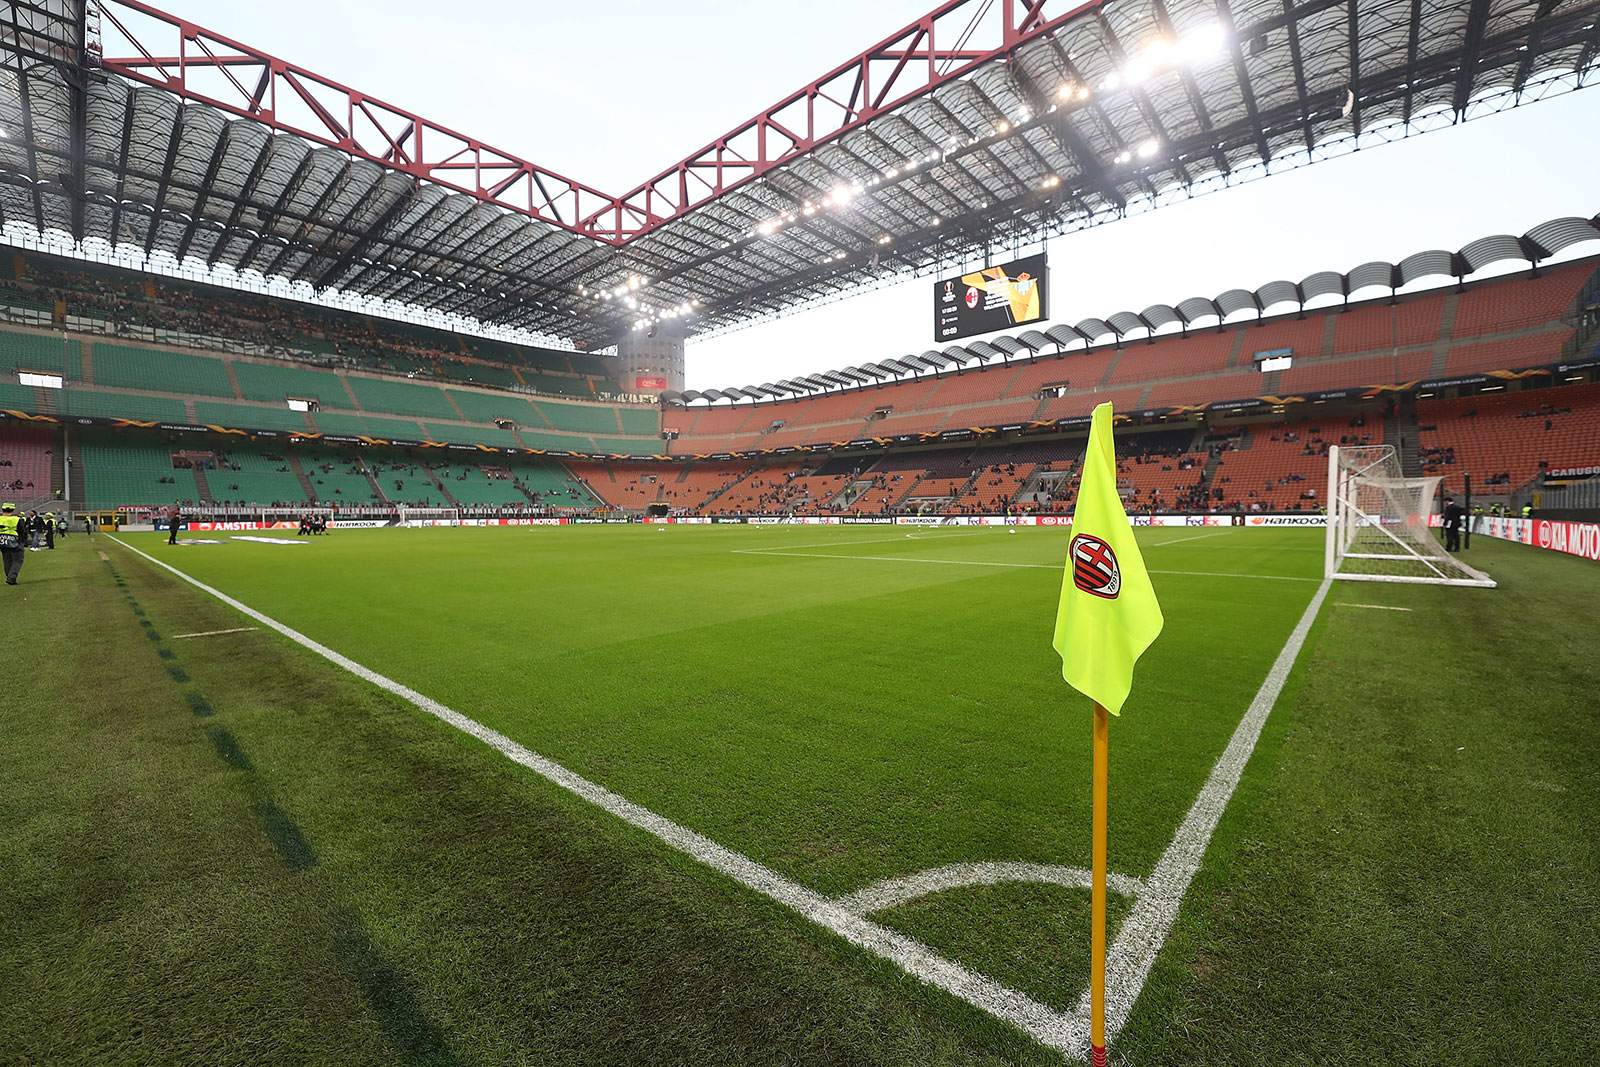 Stadio San Siro before Milan-Real Betis at Stadio San Siro on October 25, 2018. (Photo by Marco Luzzani/Getty Images)